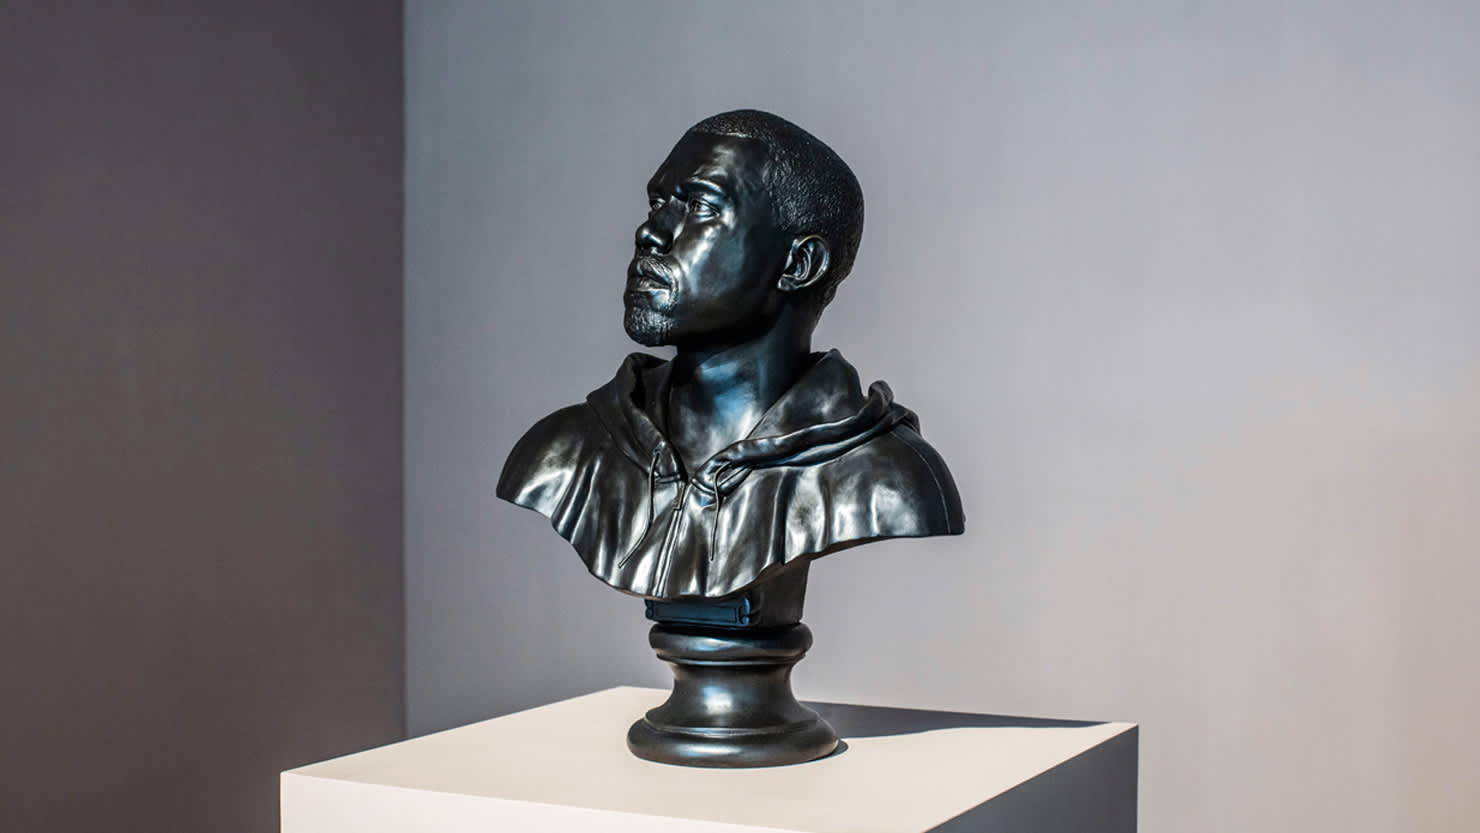 Kanye, 2015 by Kehinde Wiley on display in Plymouth's Levinsky Gallery, autumn 2020